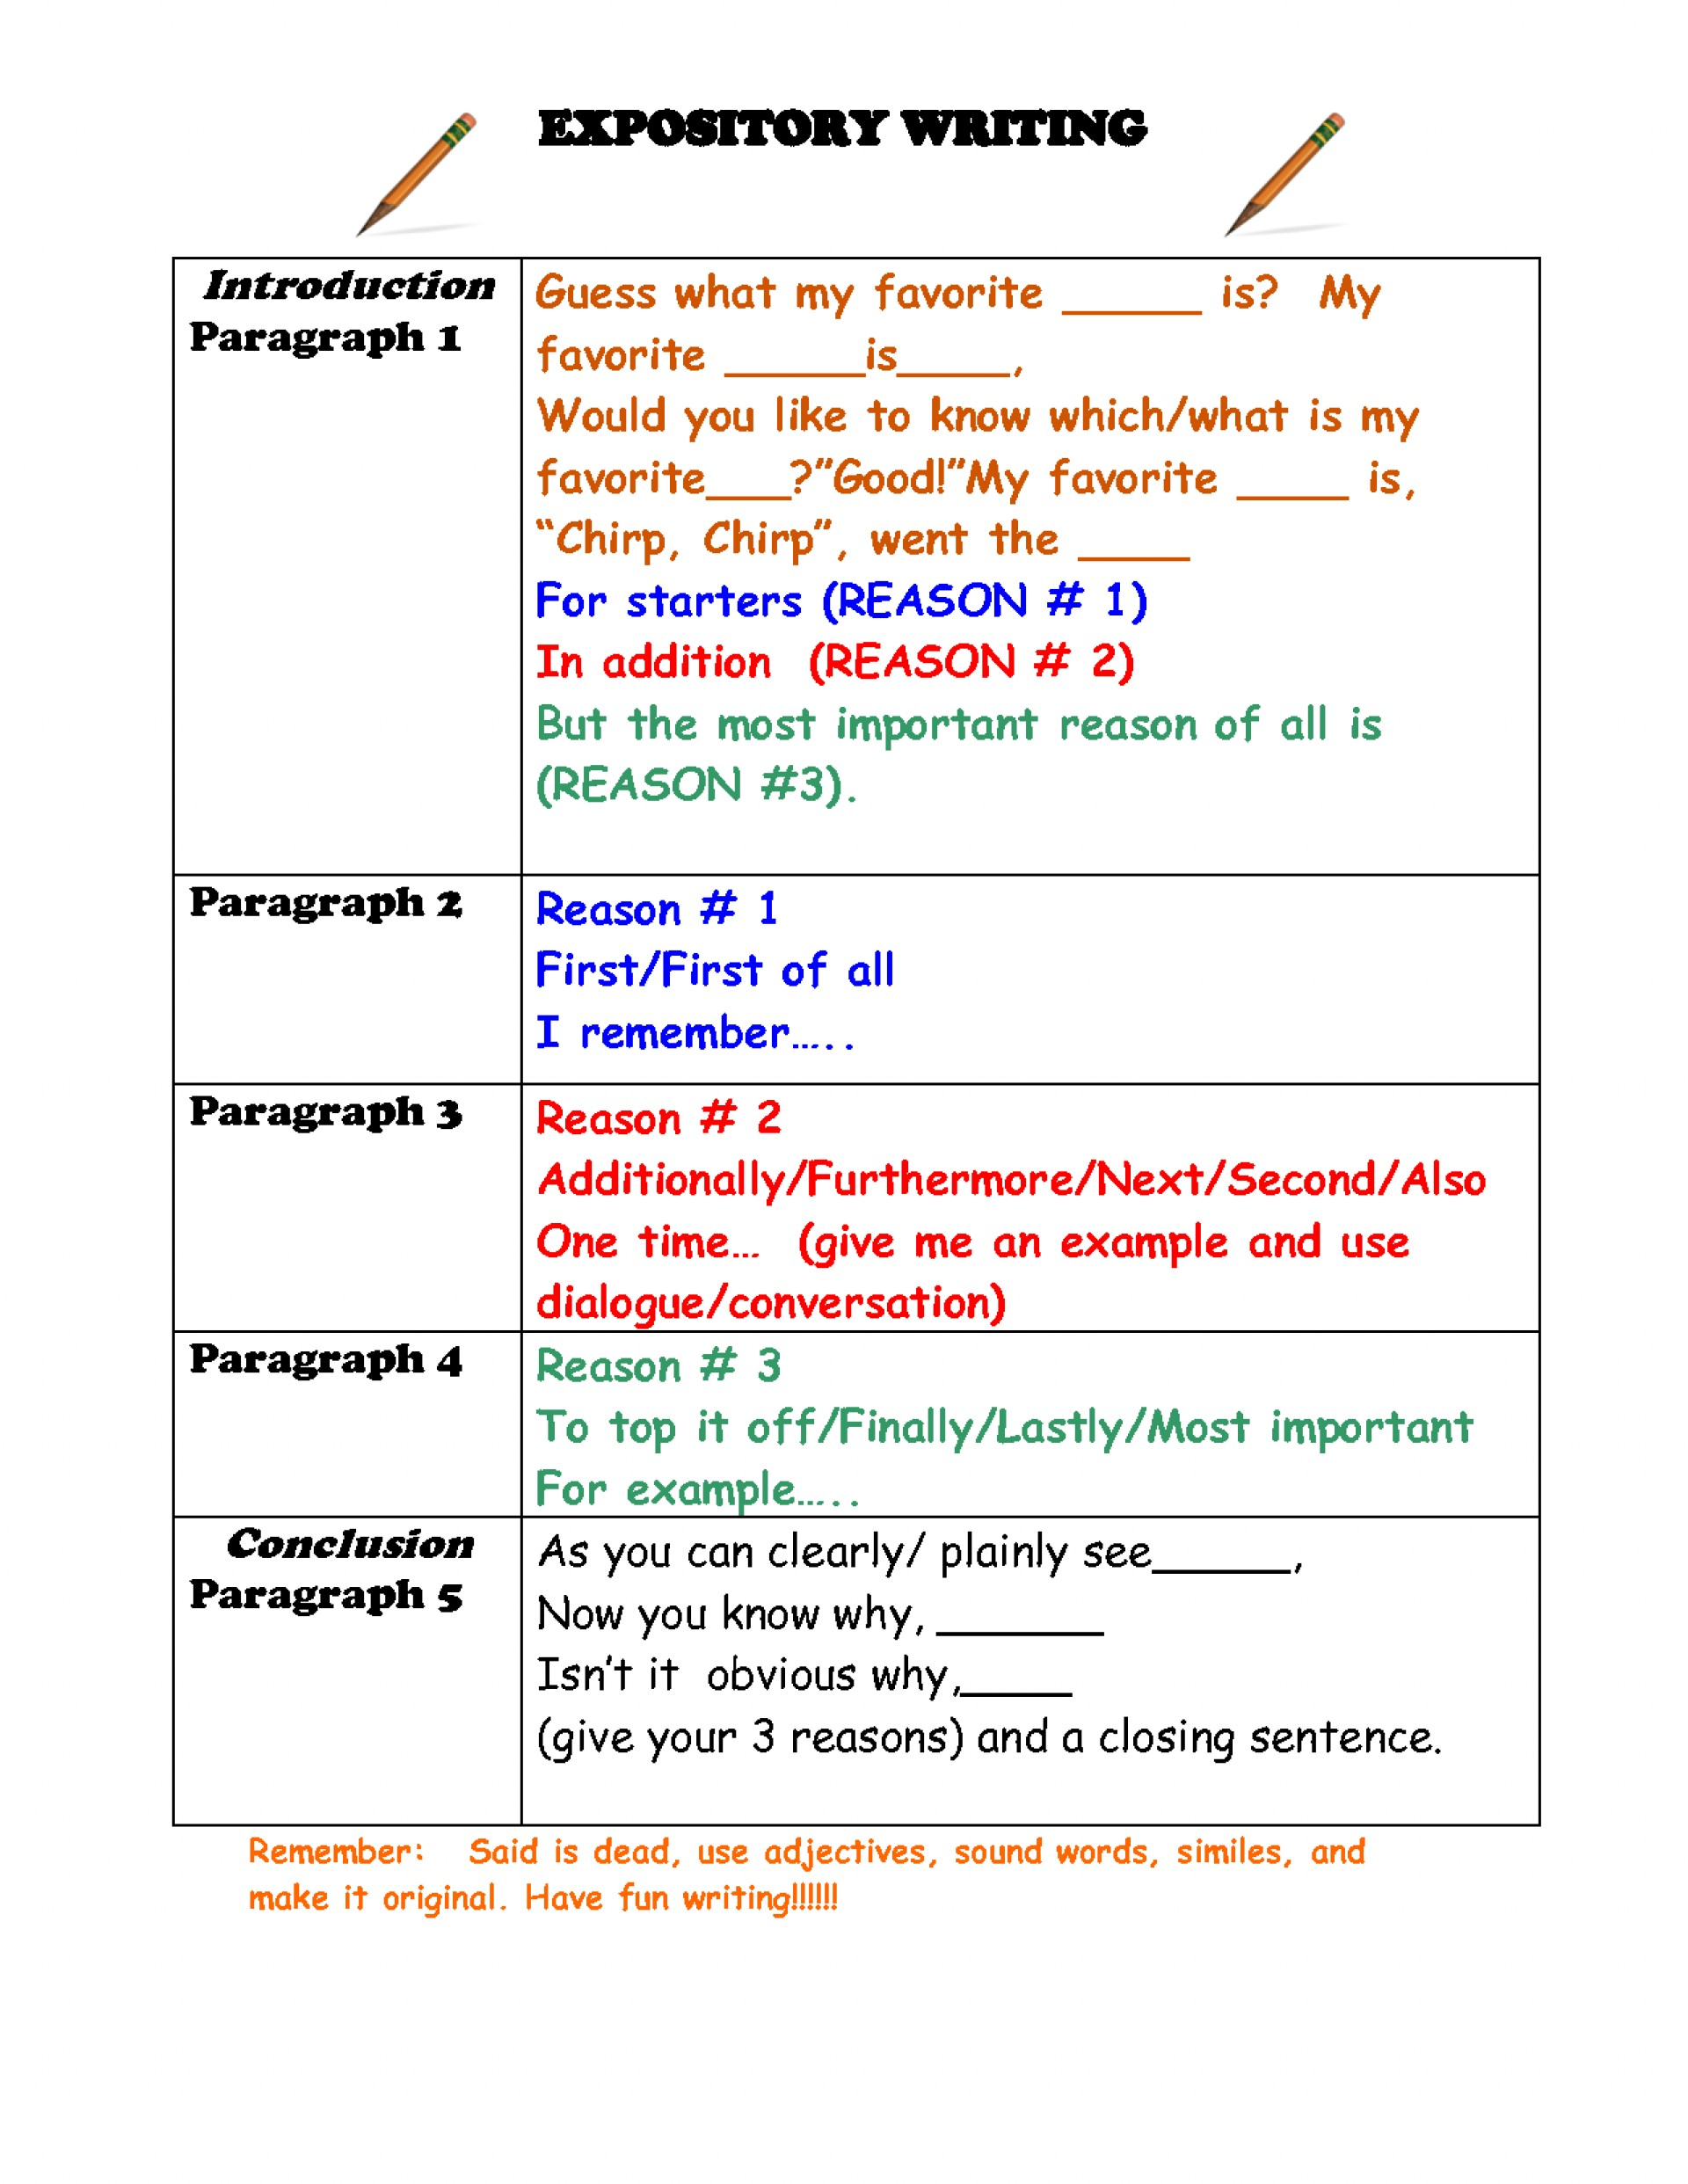 008 Expository Essay Introduction Surprising Format Sample 1920